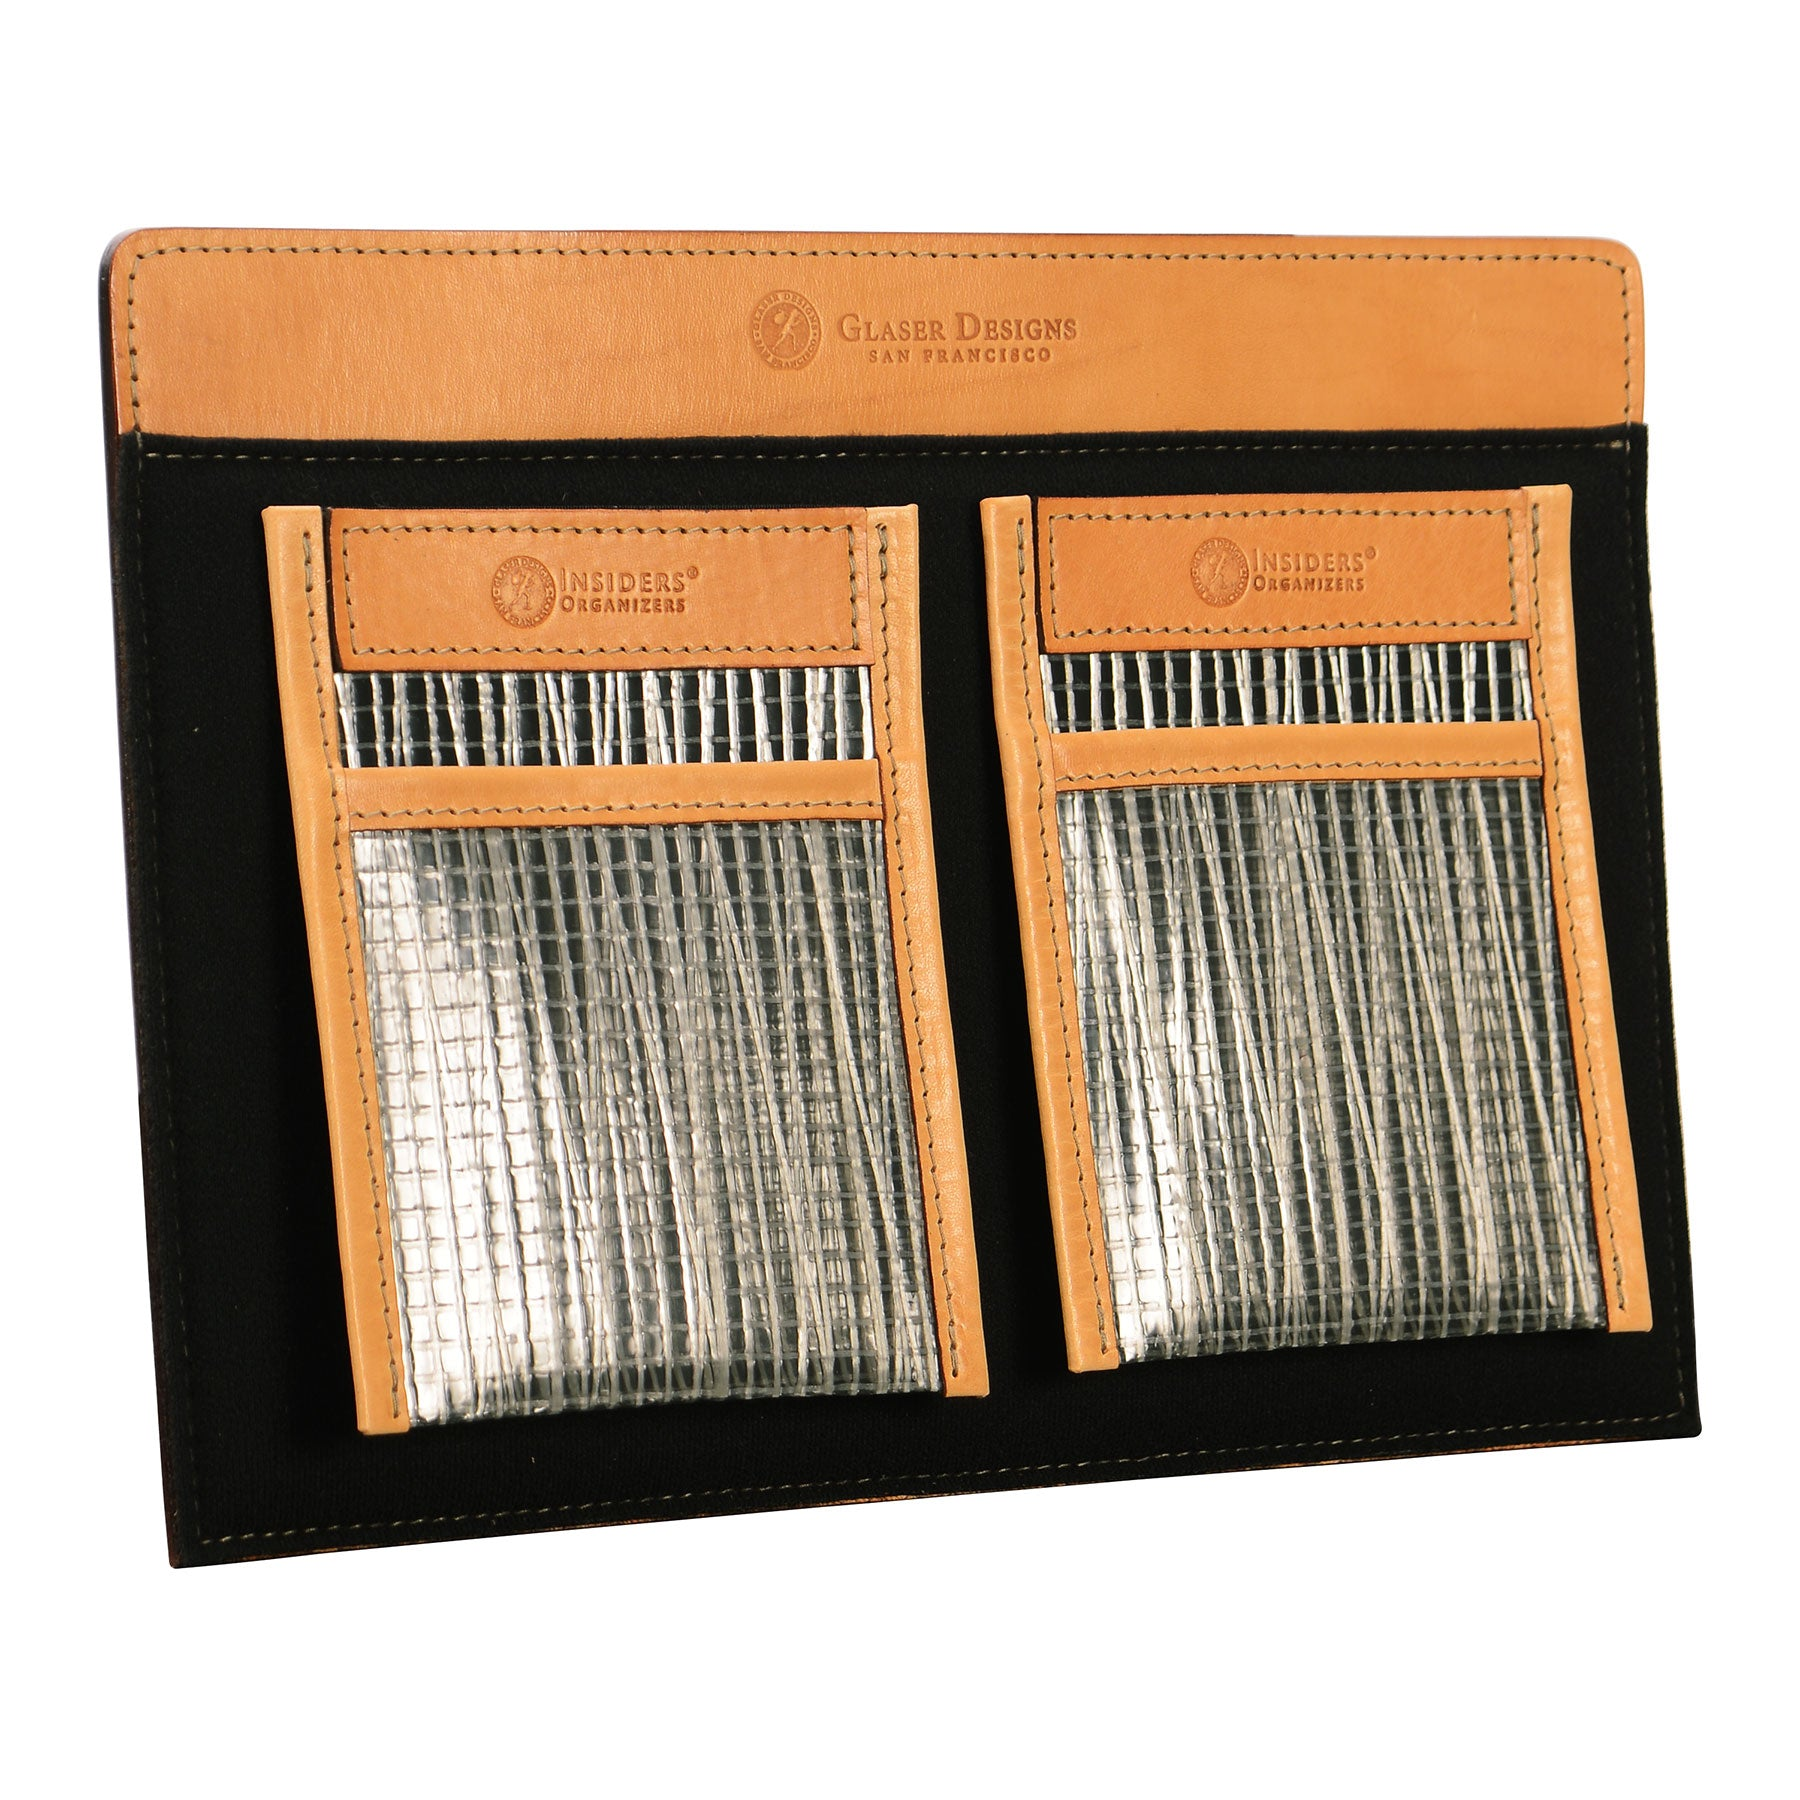 Shirt Pocket Organizer: hand-burnished leather